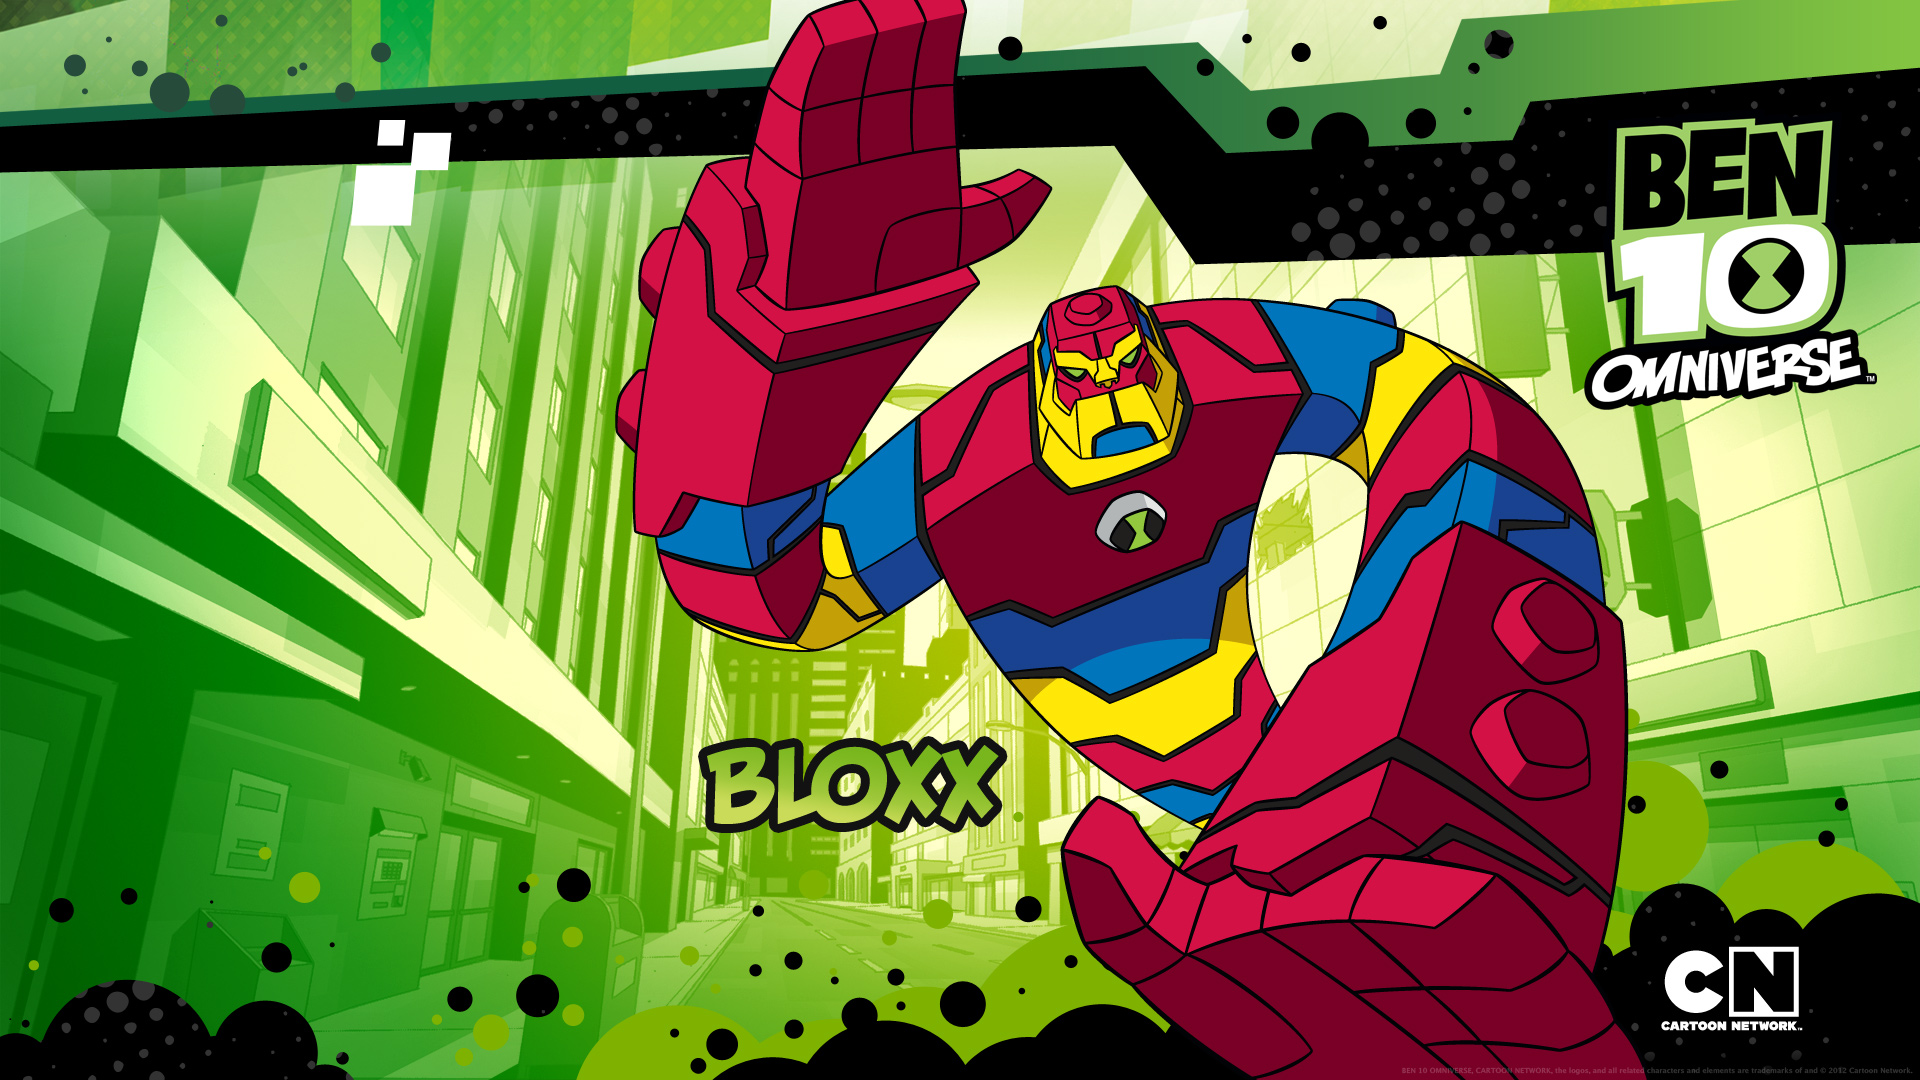 ben 10 omniverse images bloxx hd wallpaper and background